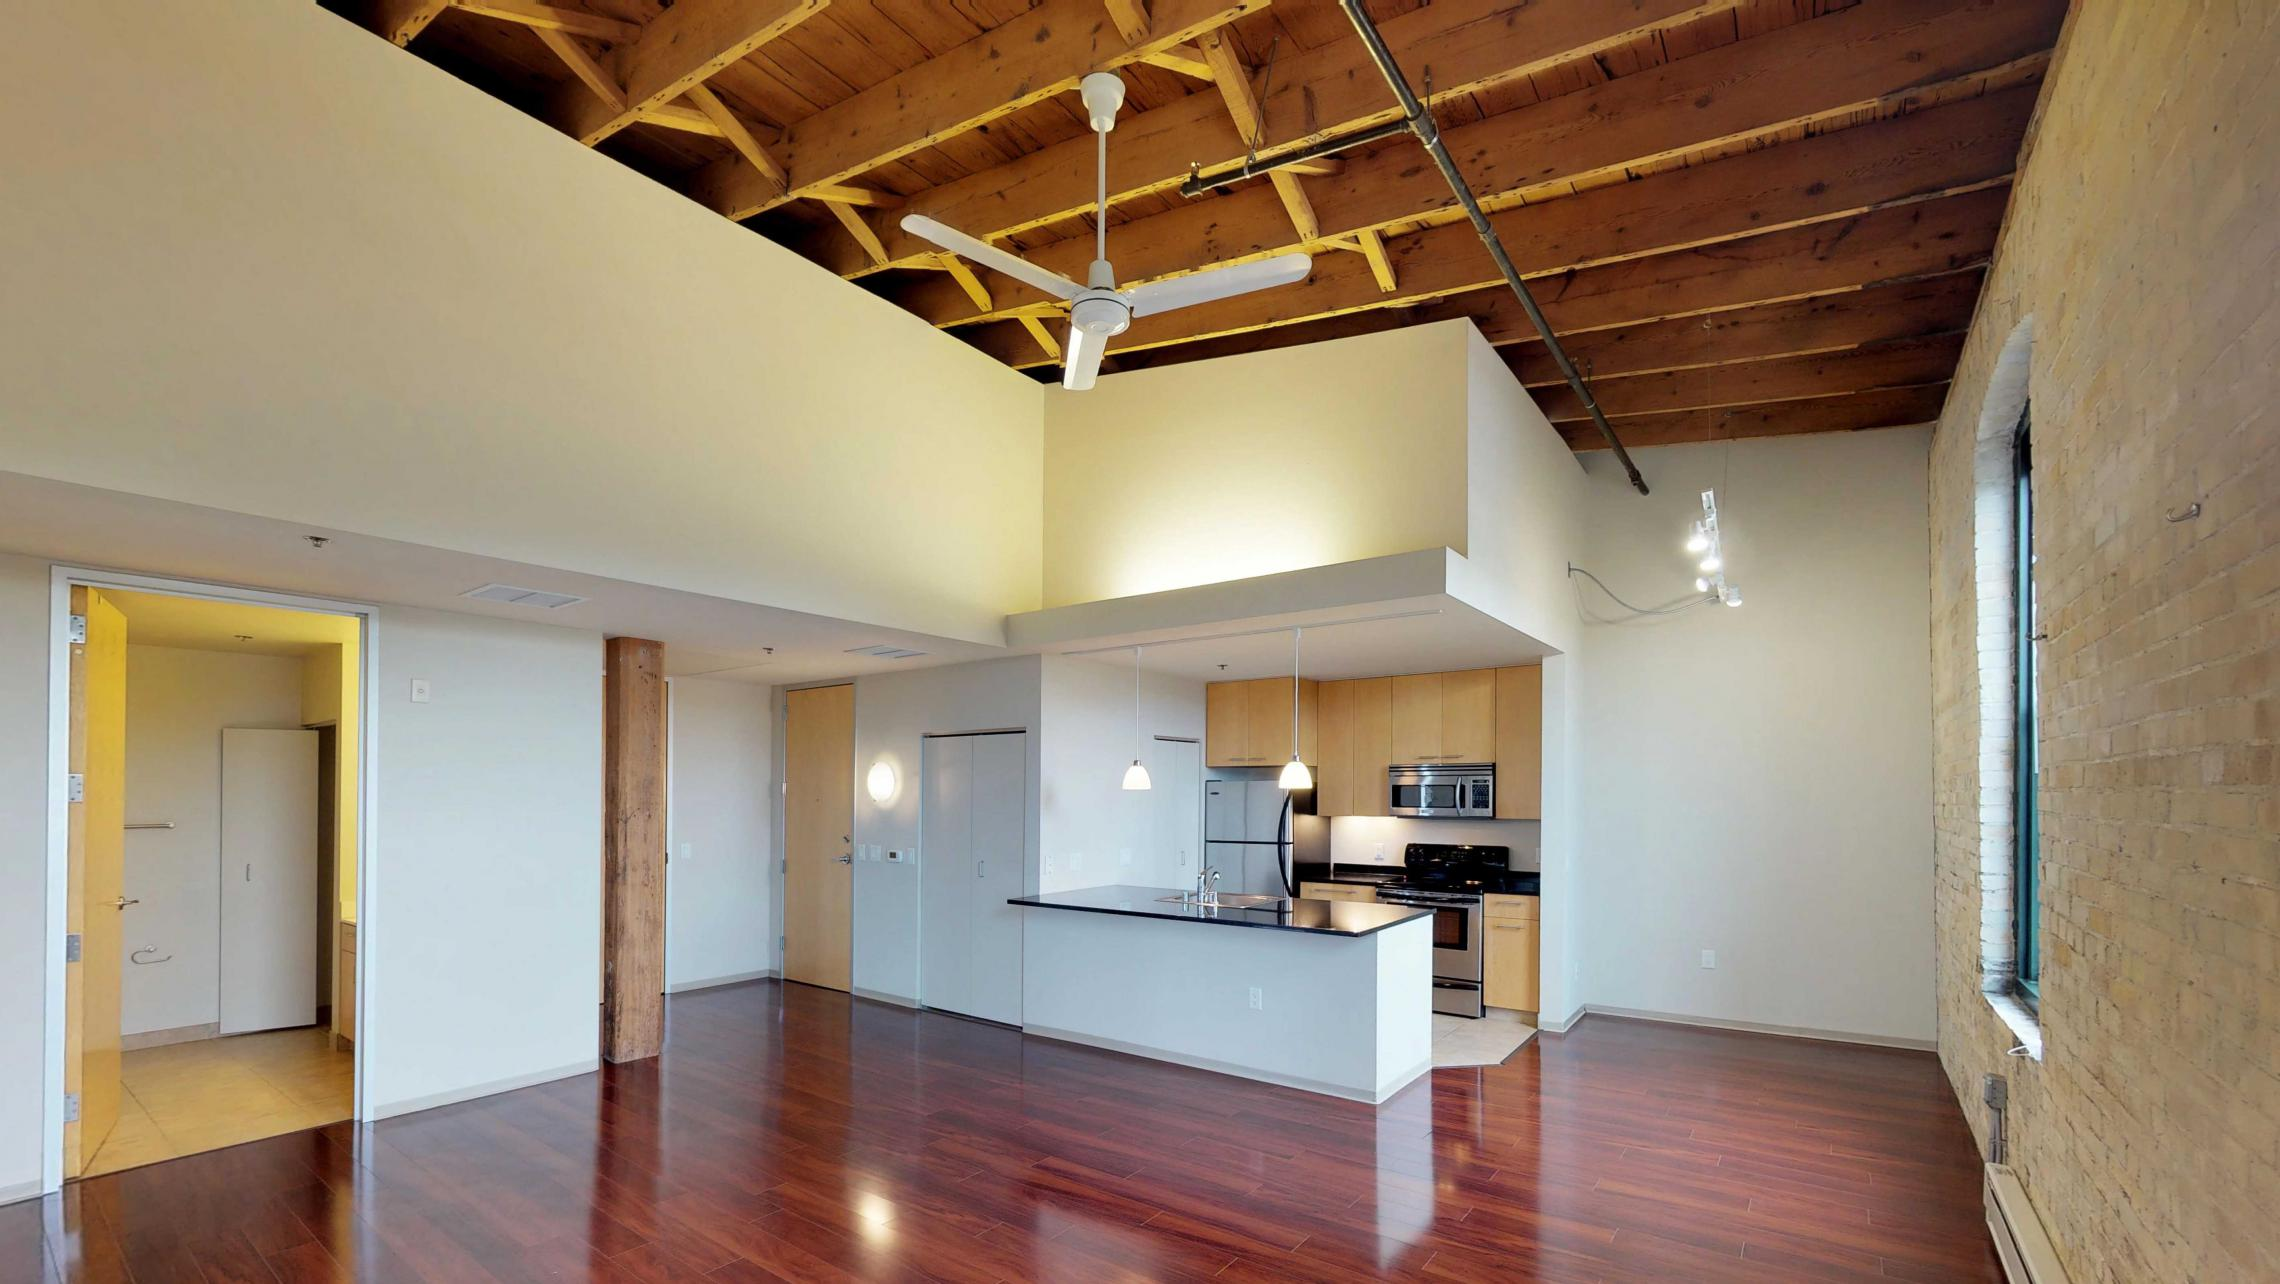 Tobacco-Lofts-Two-Bedroom-Apartment-E312-Historic-Downtown-Madison-Living-Room-Kitchen-Design-Yards.jpg